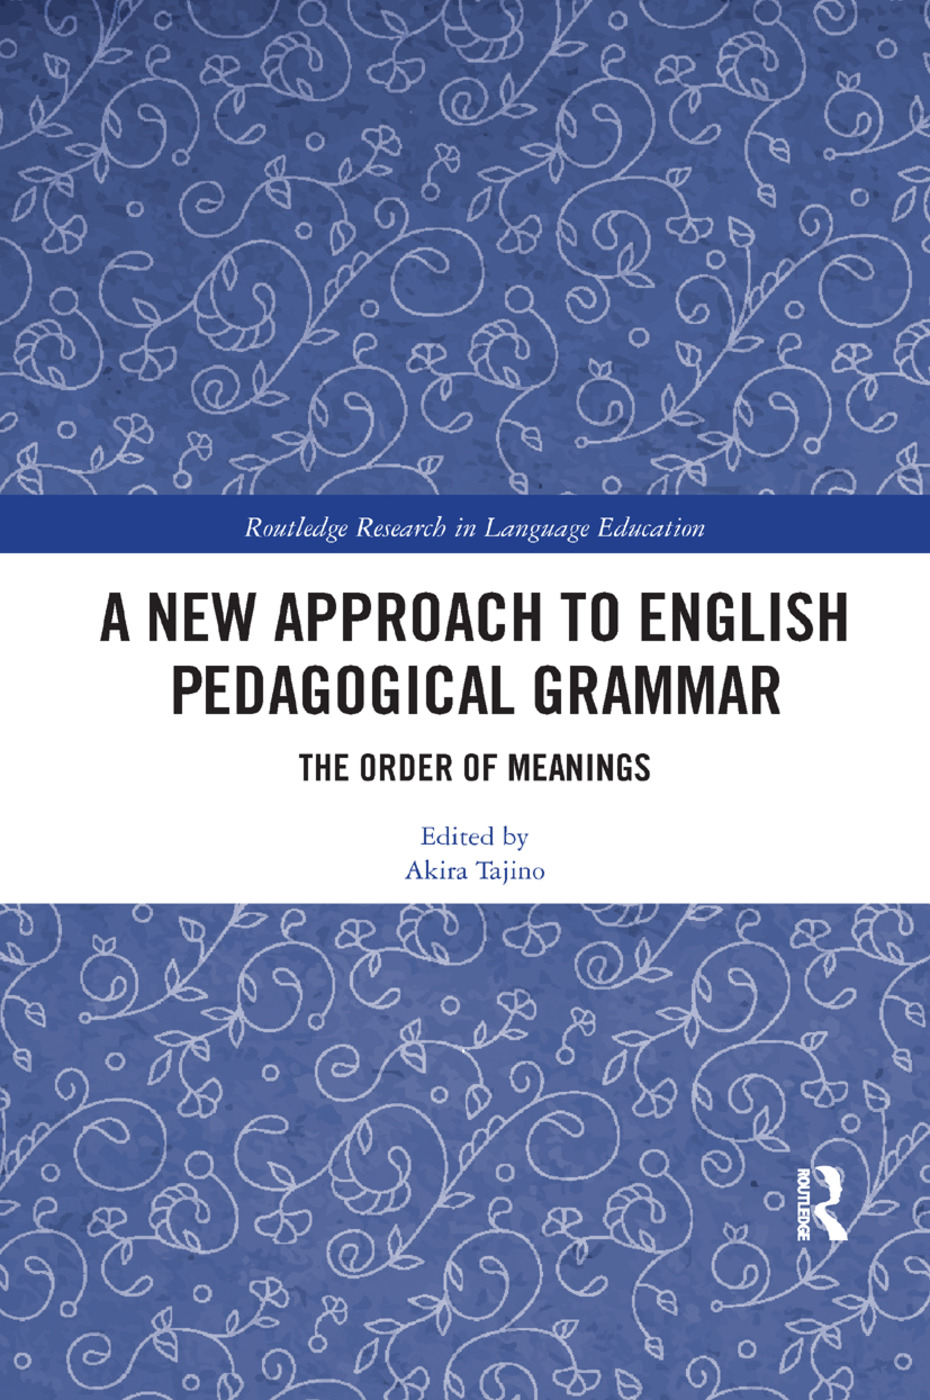 A New Approach to English Pedagogical Grammar: The Order of Meanings, 1st Edition (Paperback) book cover